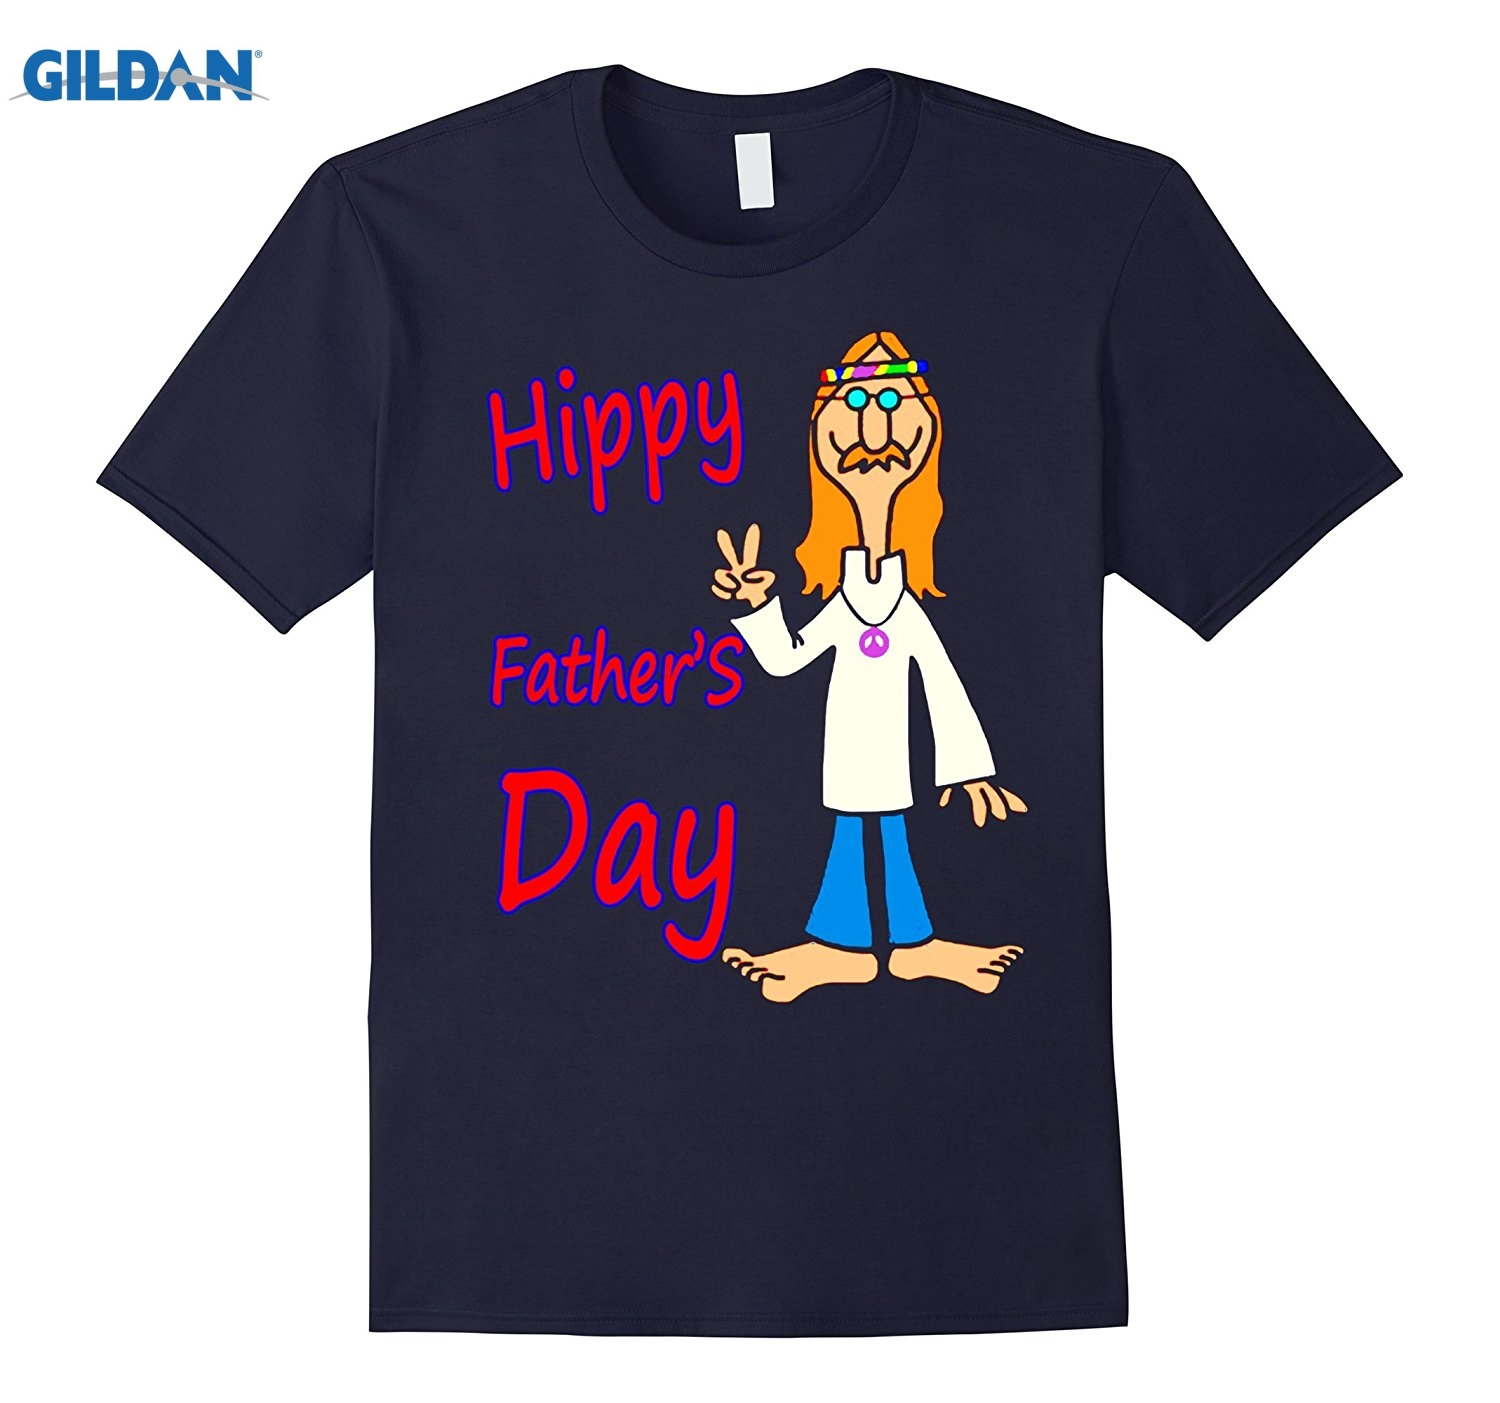 GILDAN heppy fathers day funny science big daddy 2017 t shirts